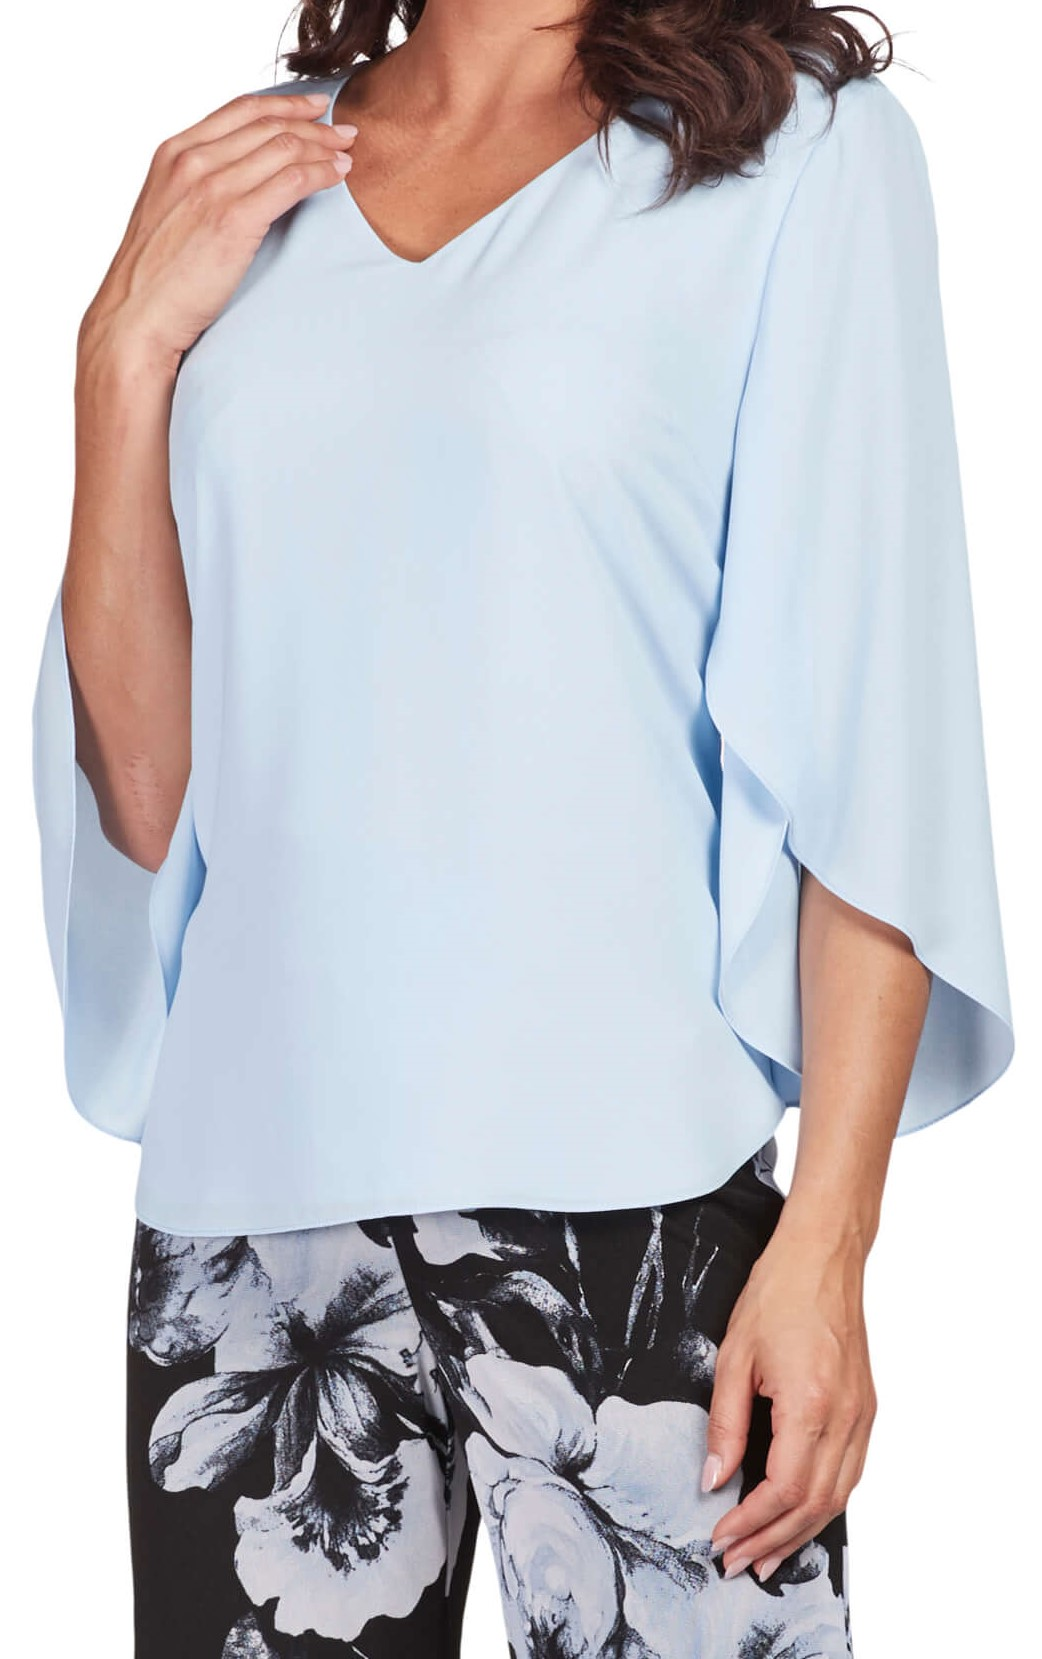 Frank Lyman Womens Split Sleeved Top, Style 186148U, Color Powder Blue